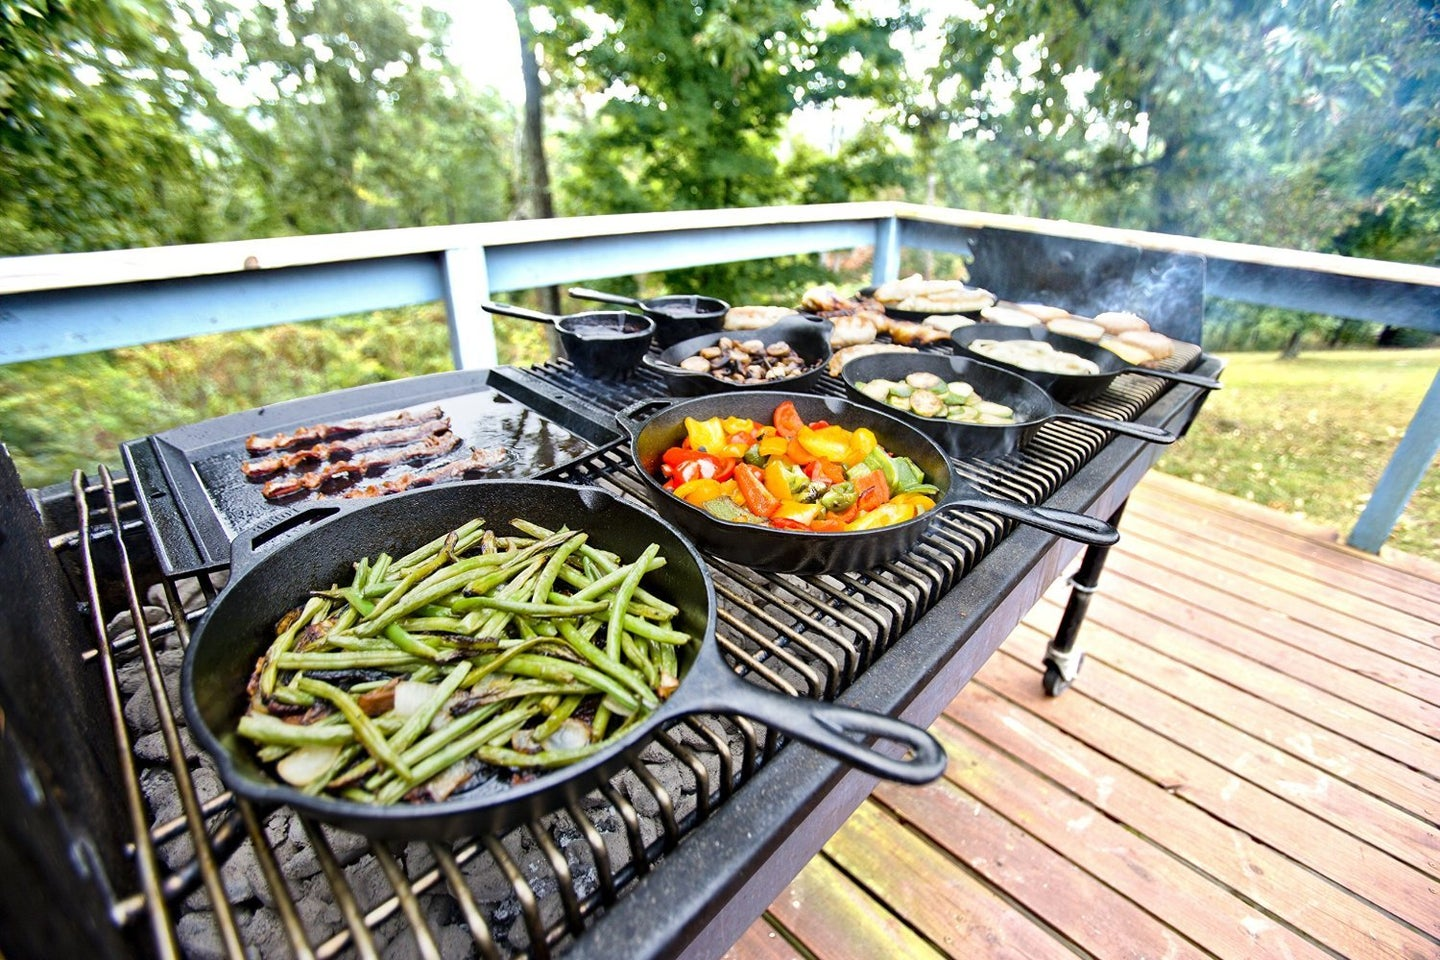 Cast iron cookware on a grill.